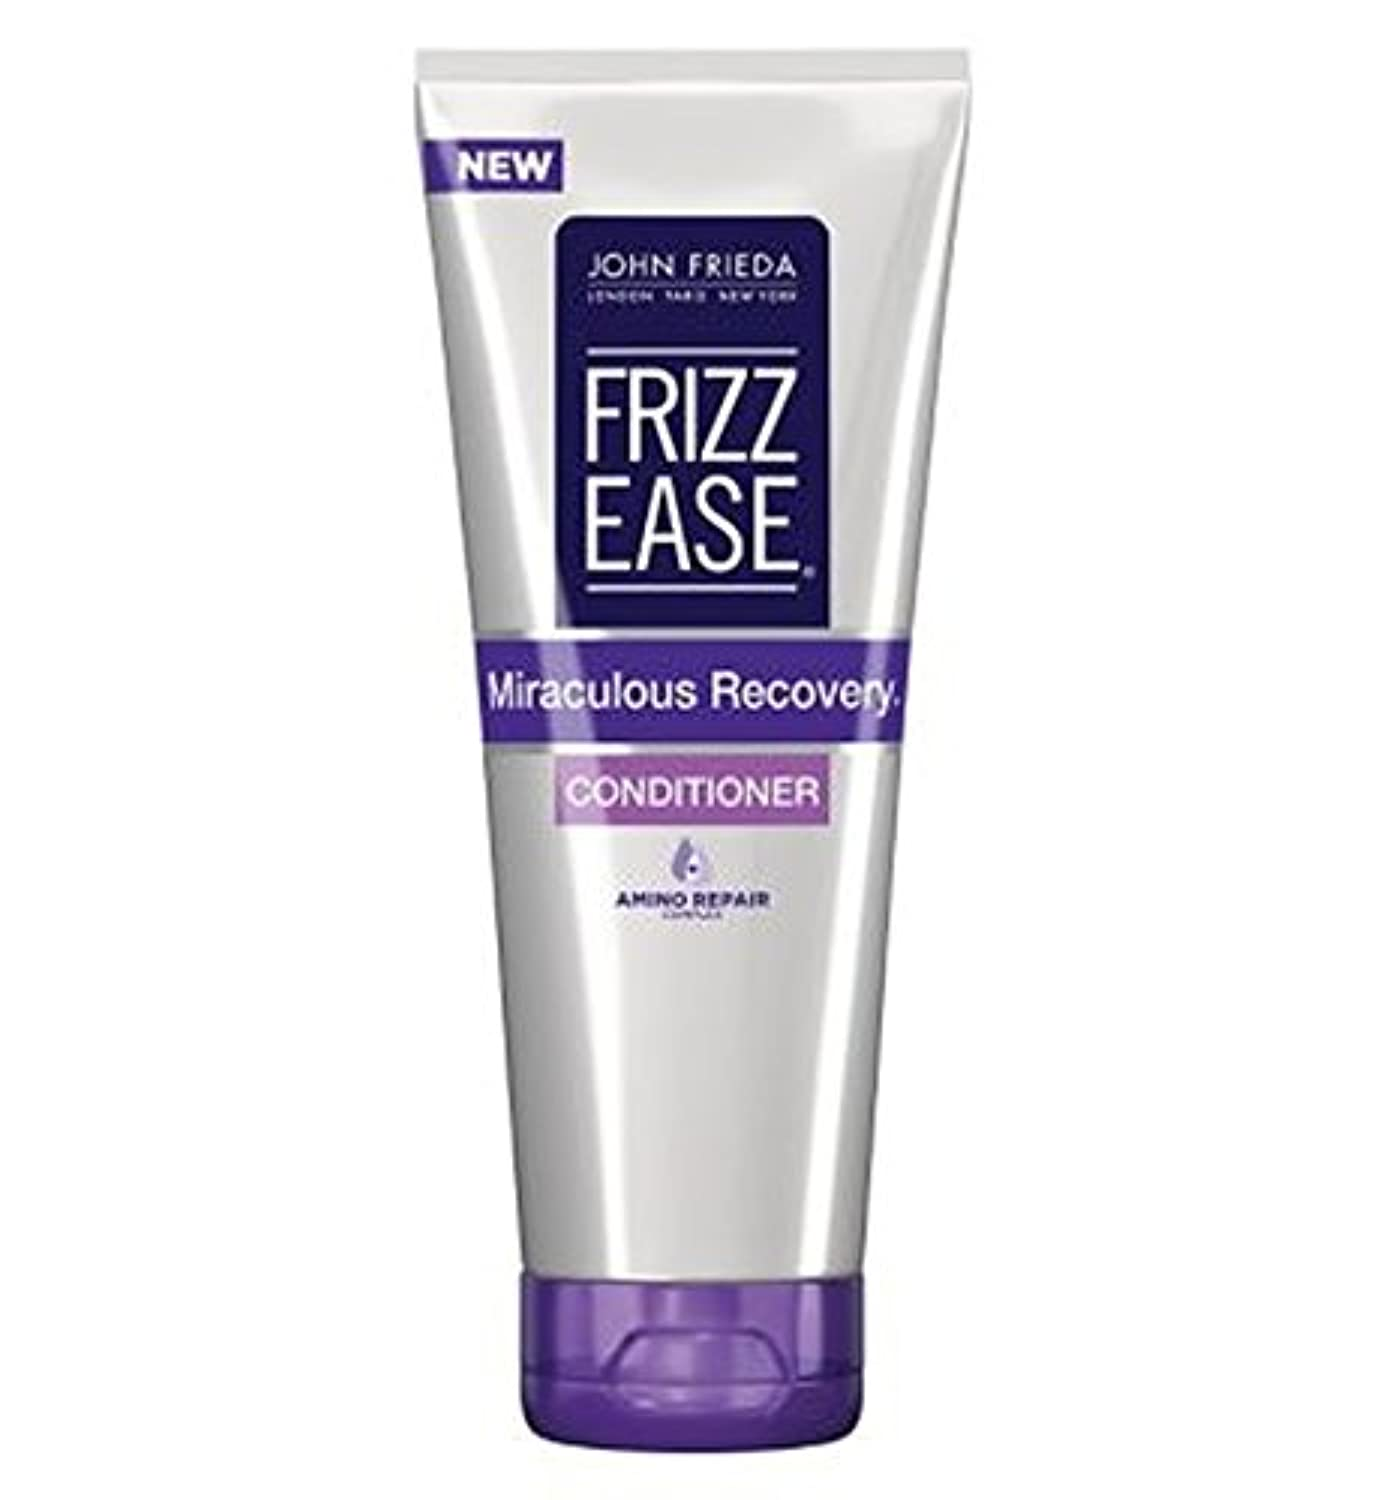 ジョン?フリーダ縮れ容易奇跡的な回復コンディショナー250Ml (John Frieda) (x2) - John Frieda Frizz Ease Miraculous Recovery Conditioner 250ml...